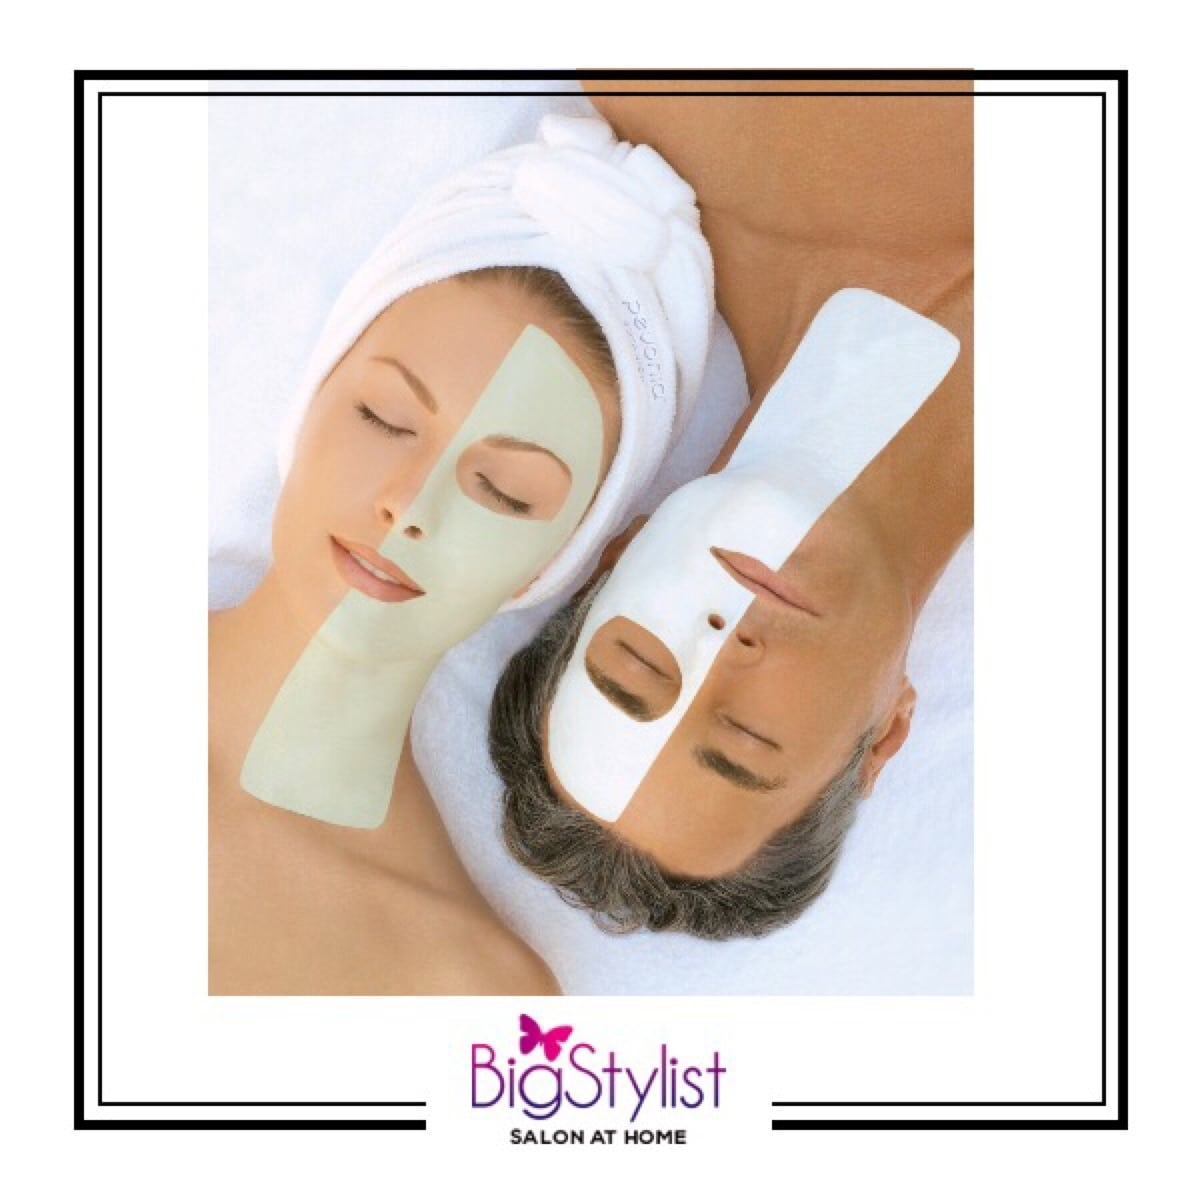 What better way to relax this weekend than a couples spa at the comfort of your home? Like this? Say a Hi on WhatsApp at 9920465699 for more such fantastic stuff!  #spa #facial #spaathome #salonathome #couplesspa #relax #rejuvenate #pamper #beauty #skincare #stayhomebeautiful #BigStylist